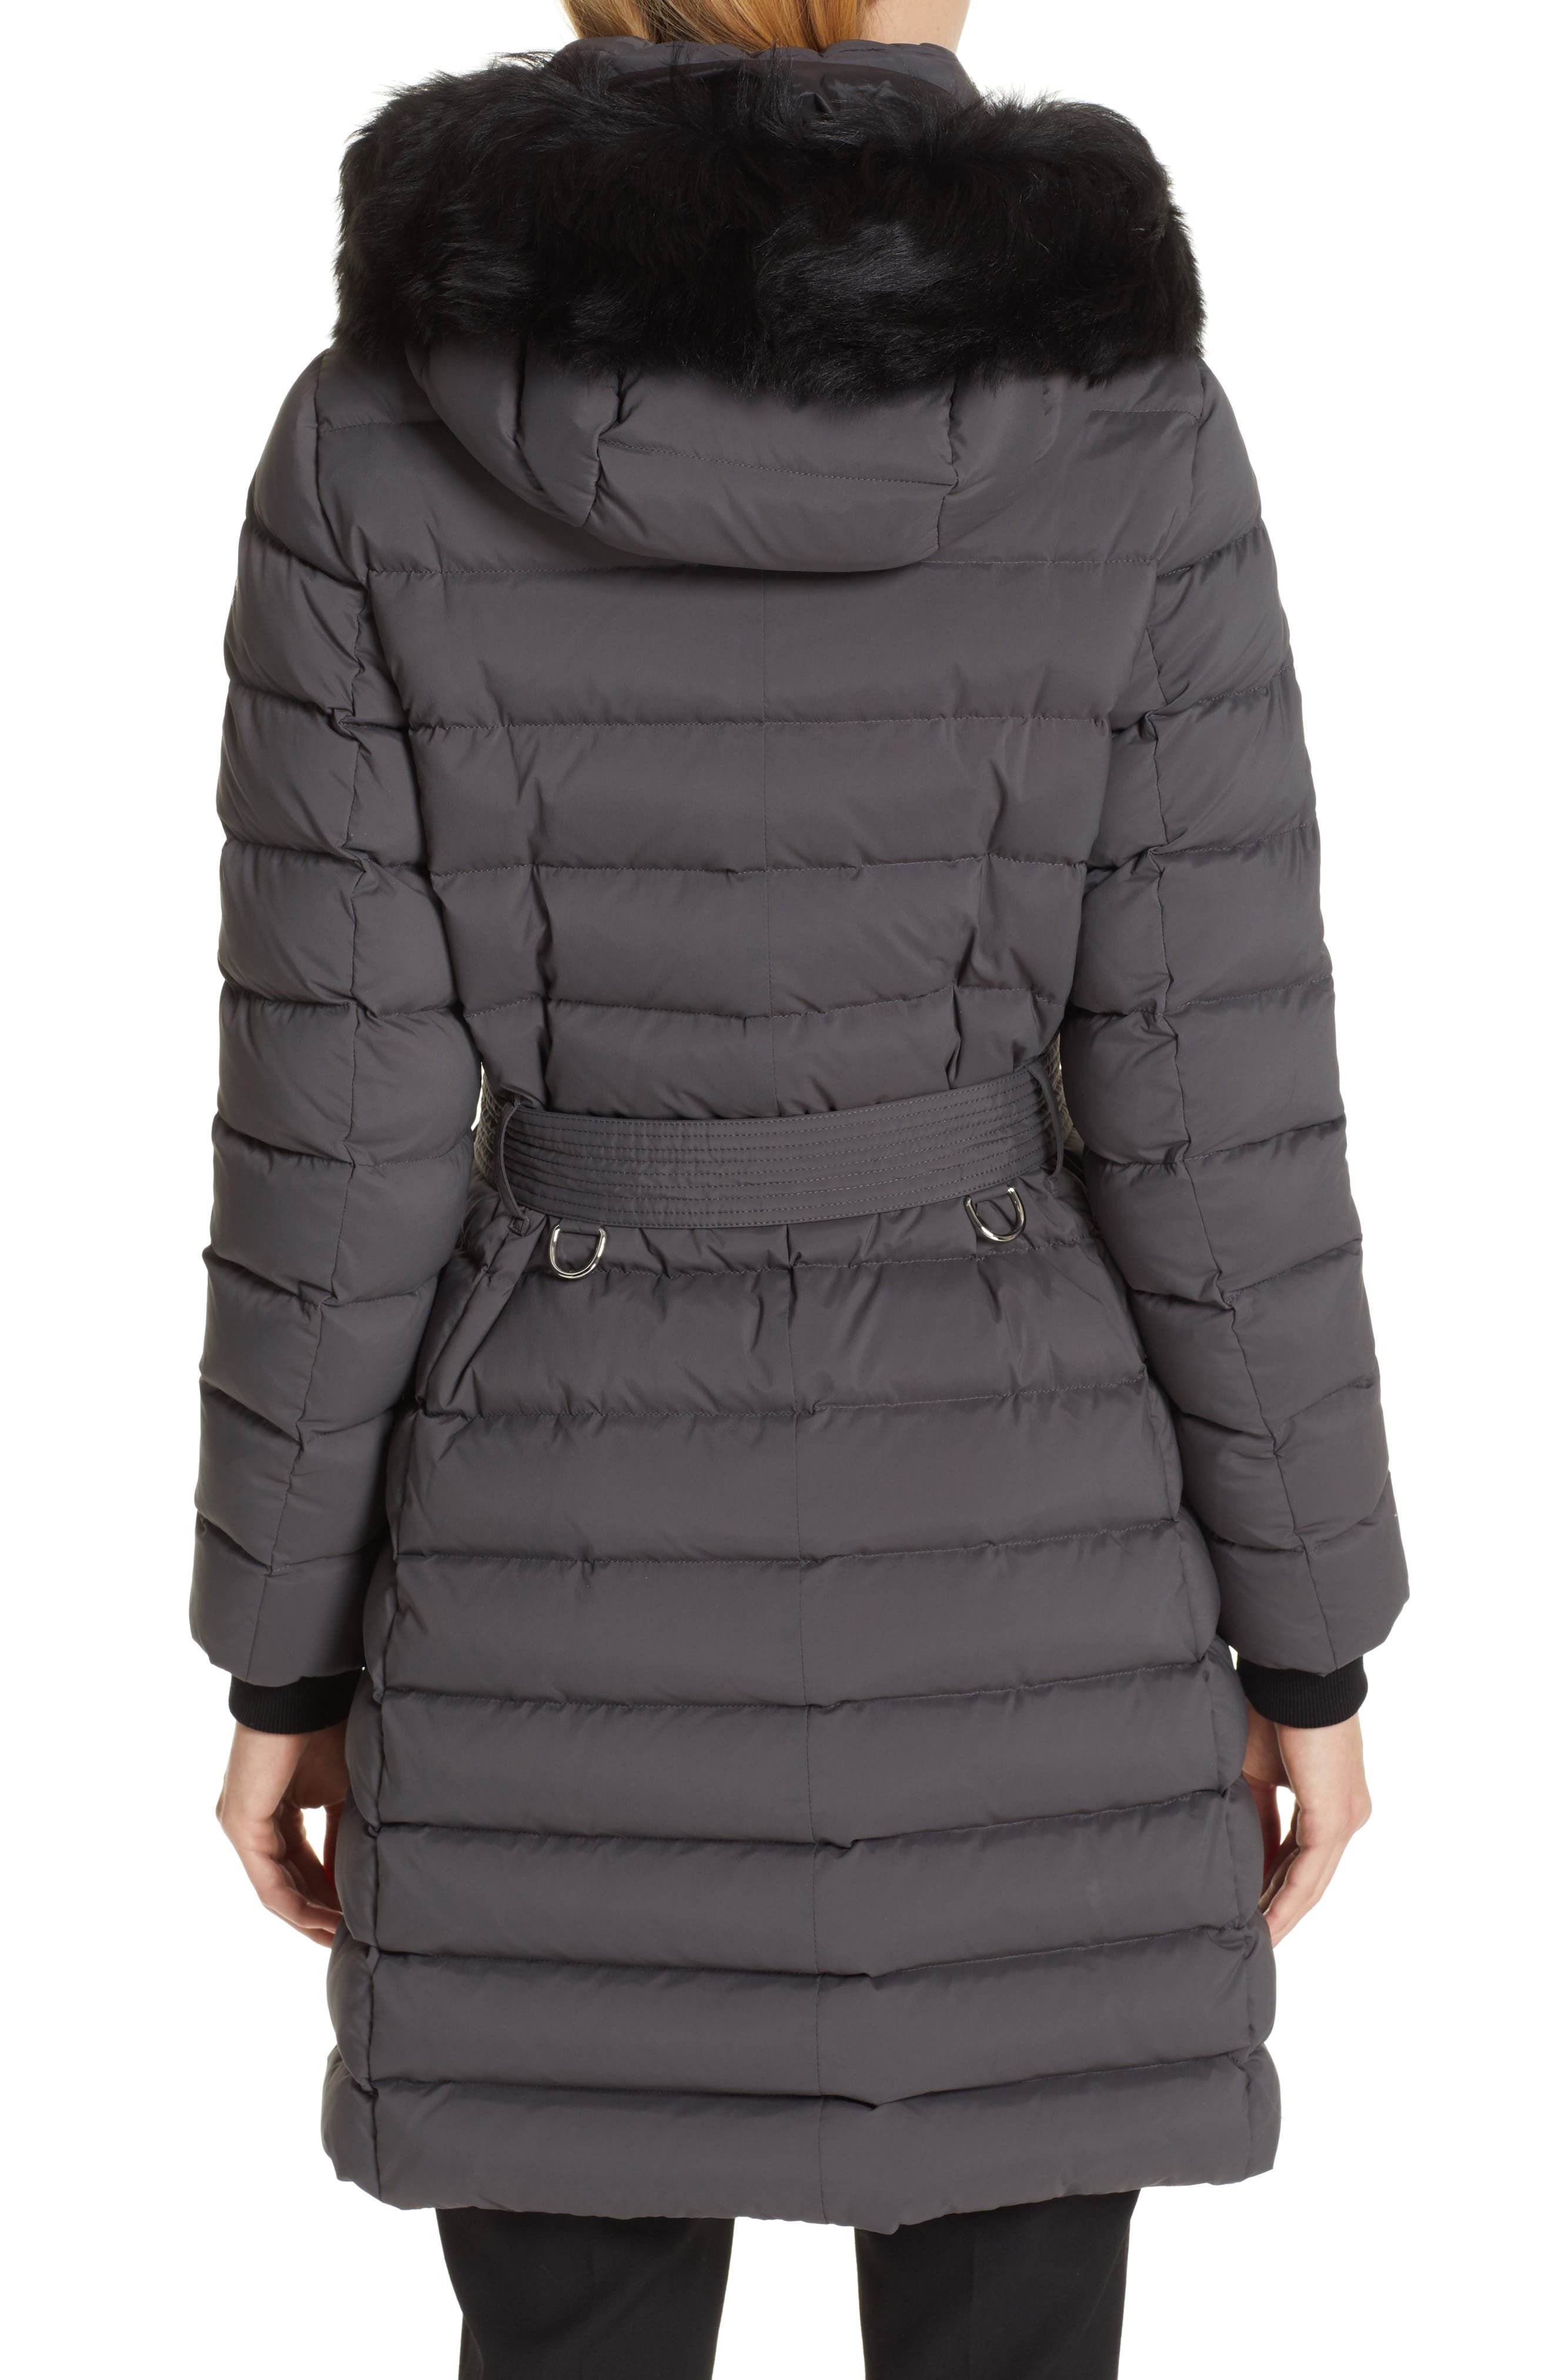 BURBERRY, Limehouse Quilted Down Puffer Coat with Removable Genuine Shearling Trim, Alternate thumbnail 4, color, MID GREY